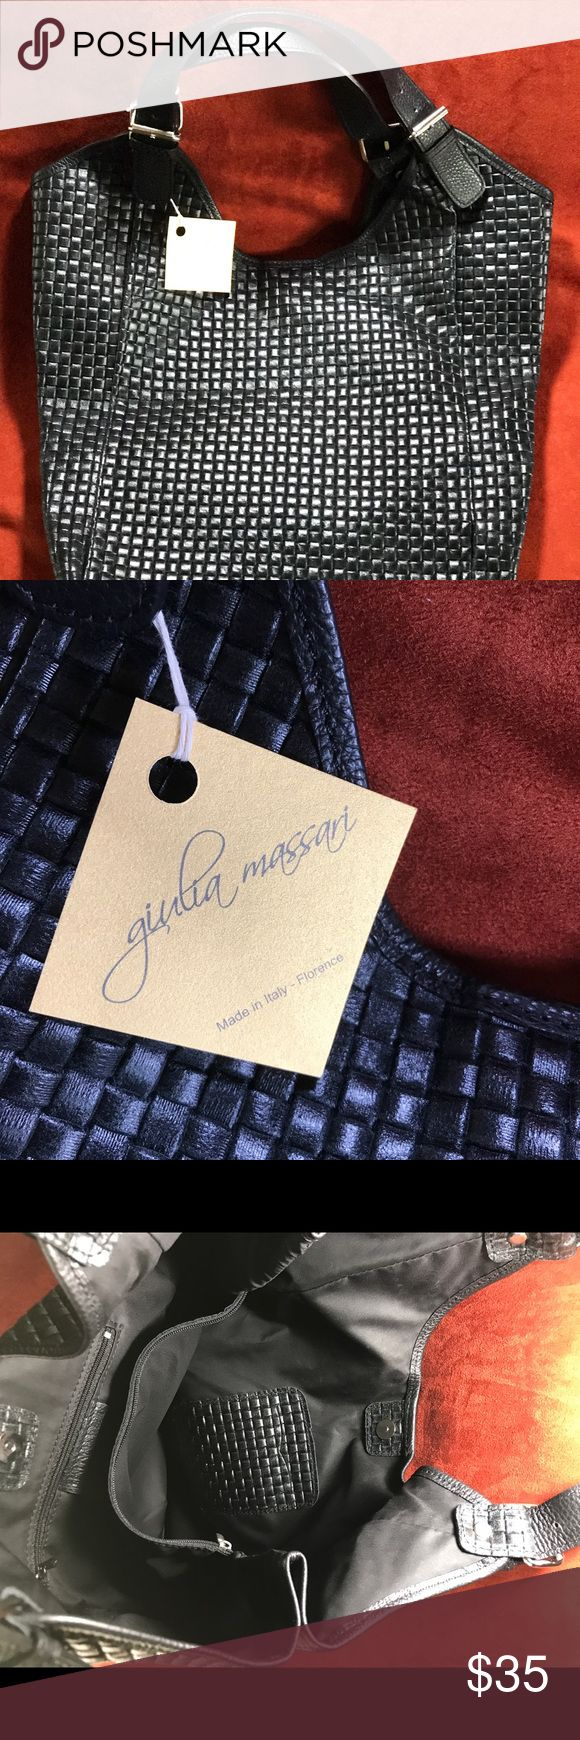 """NWT guilia massari Woven Leather Hobo Handbag NWT. This bag would make a great stylish diaper bag. I purchased it and could not return it but it's way too large for my body frame 5""""4"""" Petite. Made in Italy. Giulia Massari Bags Hobos"""